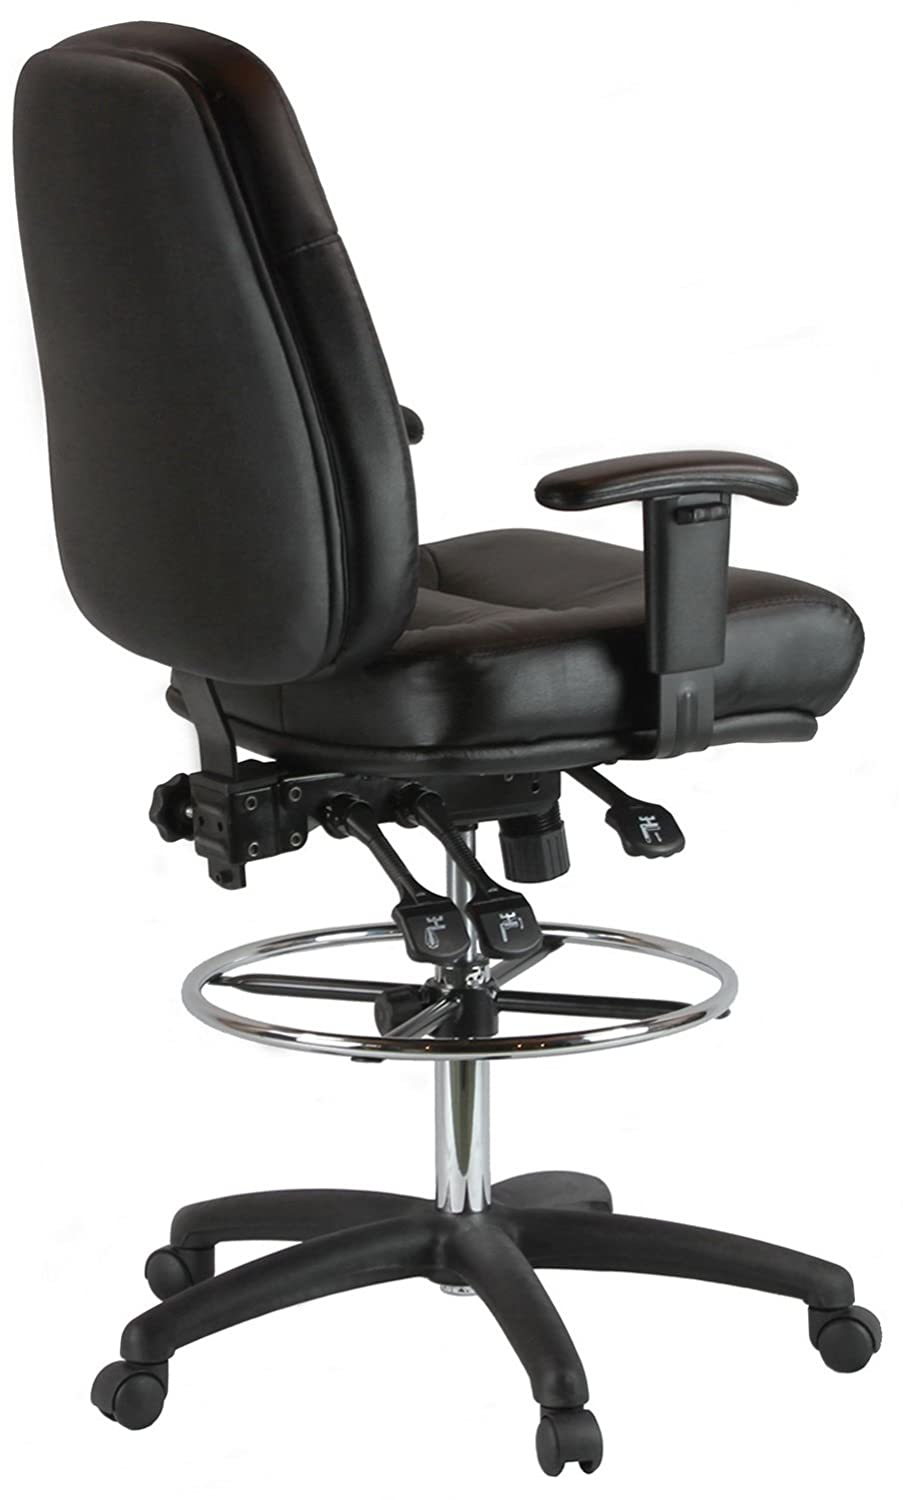 Amazon.com Harwick Premium Leather Drafting Chair With Arms Black Kitchen u0026 Dining  sc 1 st  Amazon.com & Amazon.com: Harwick Premium Leather Drafting Chair With Arms Black ... islam-shia.org